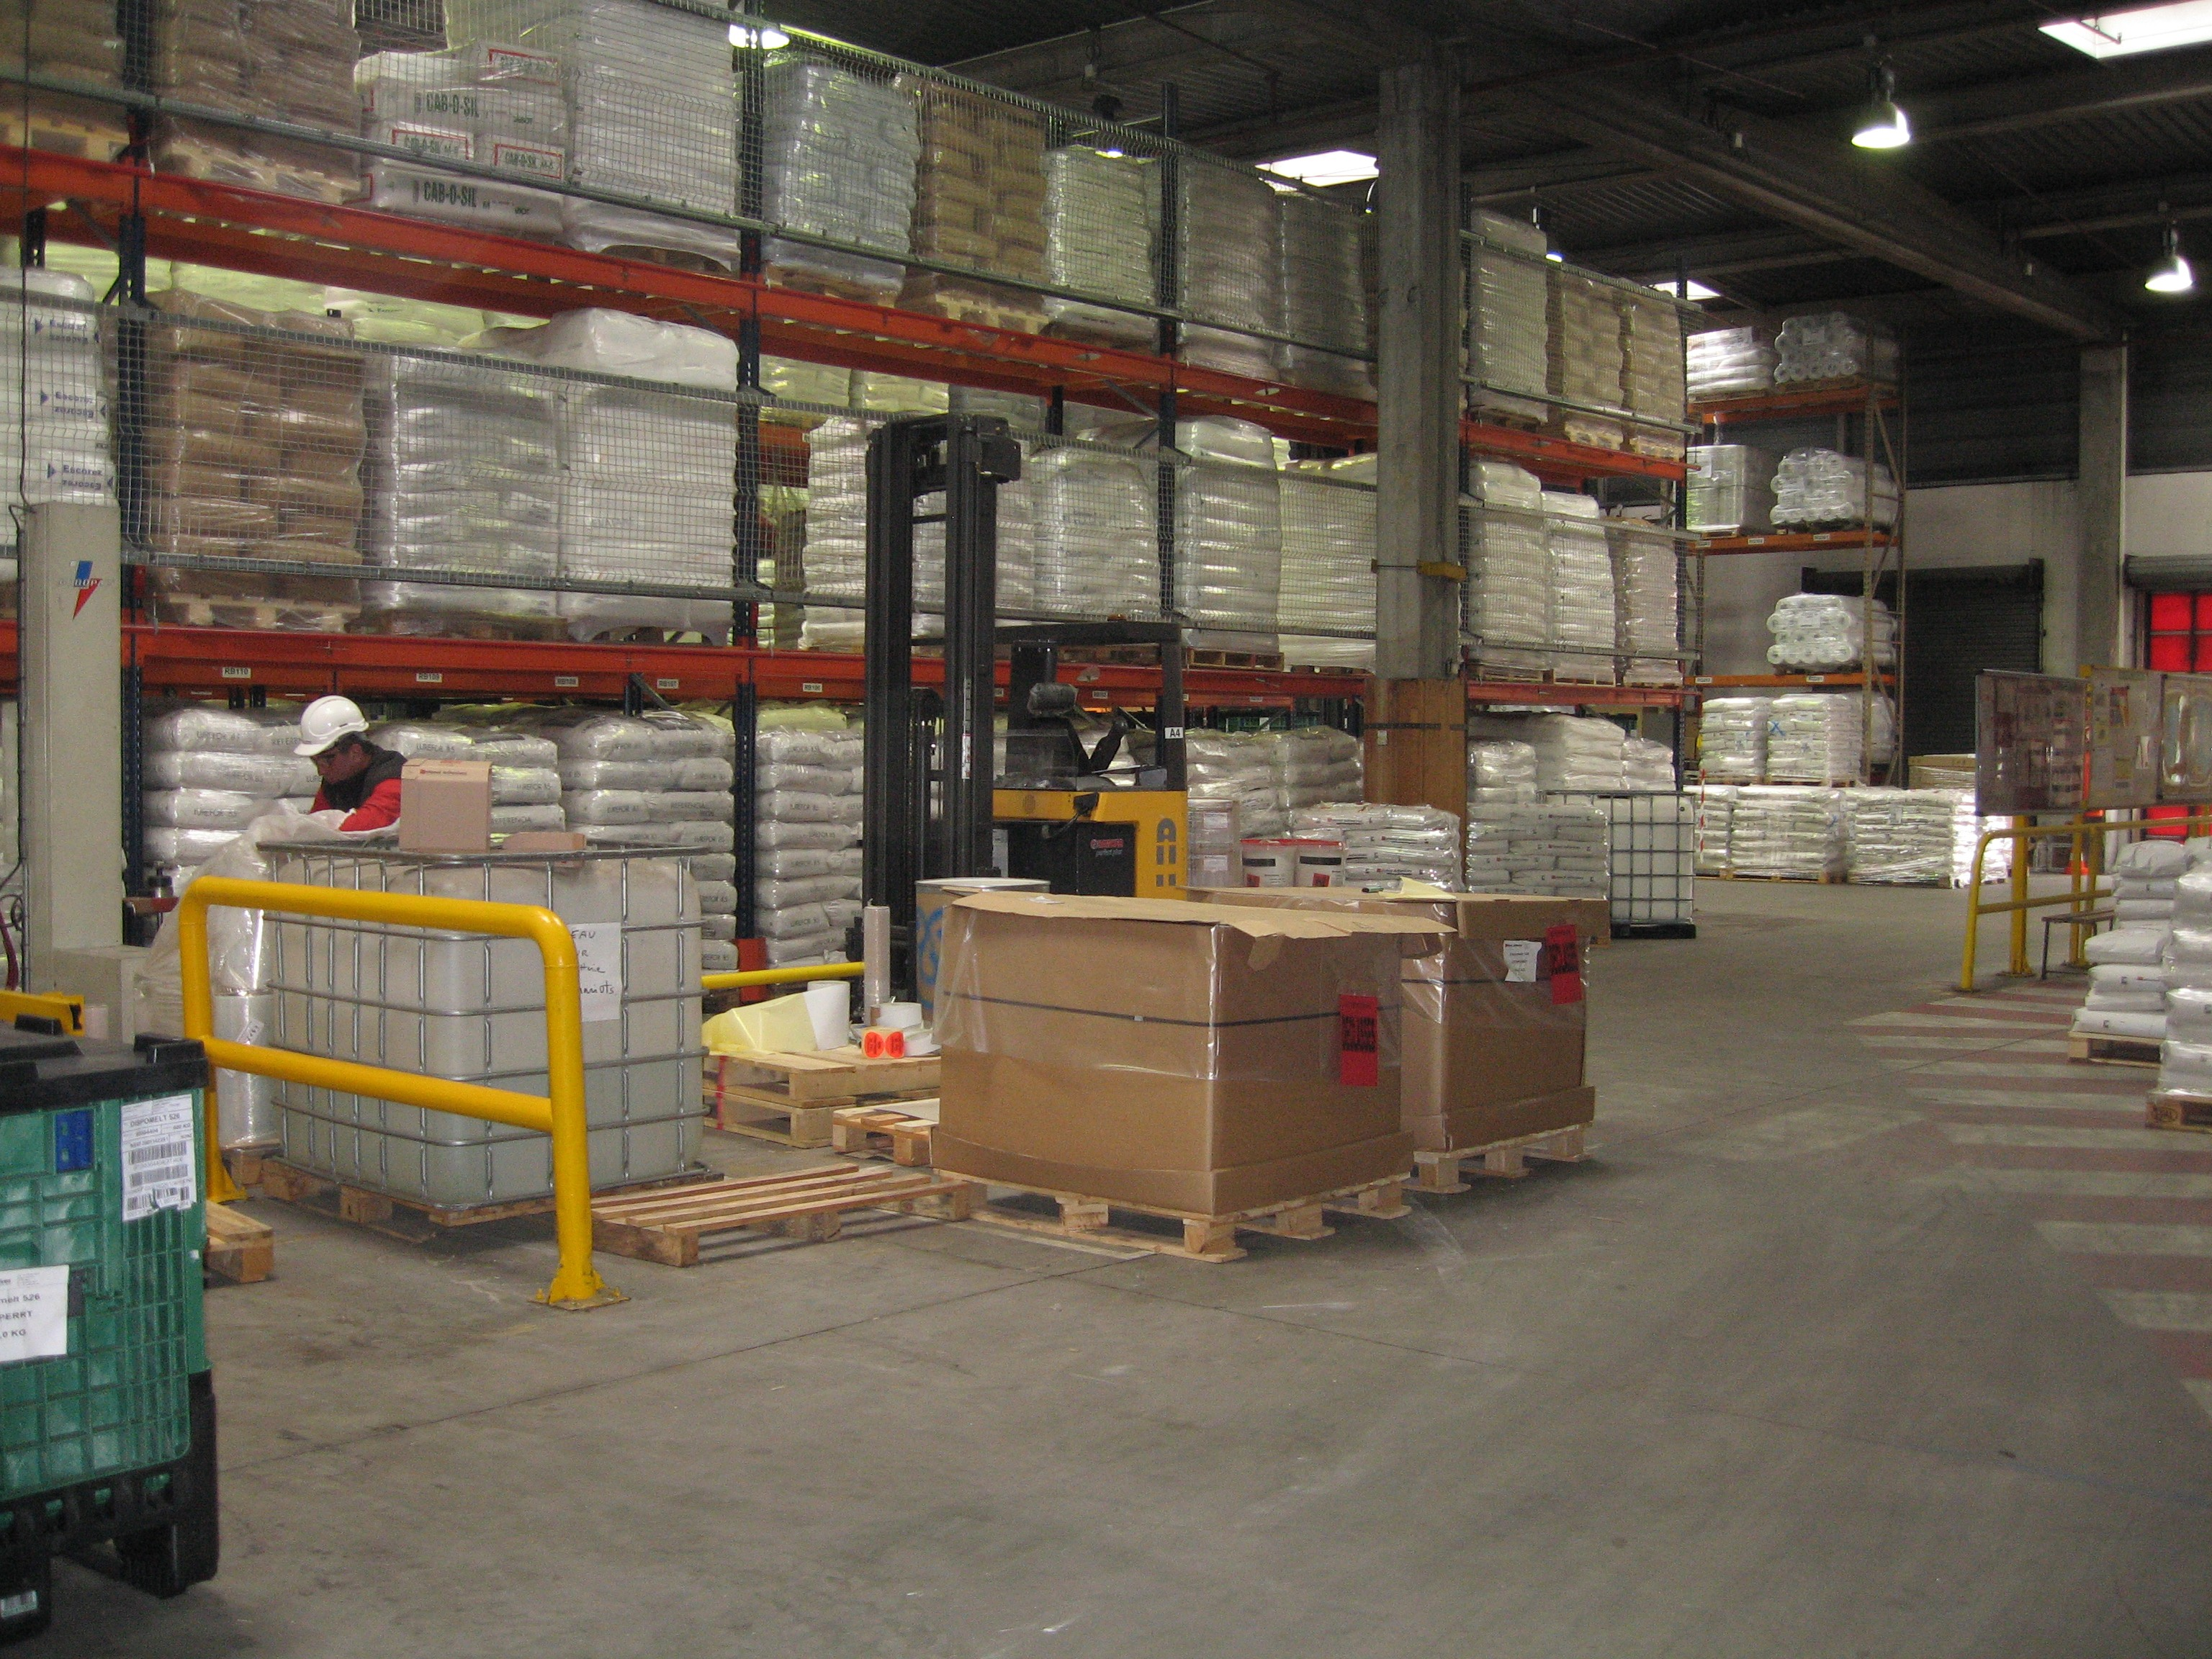 FileWarehouse plastic Industryjpg Wikimedia Commons